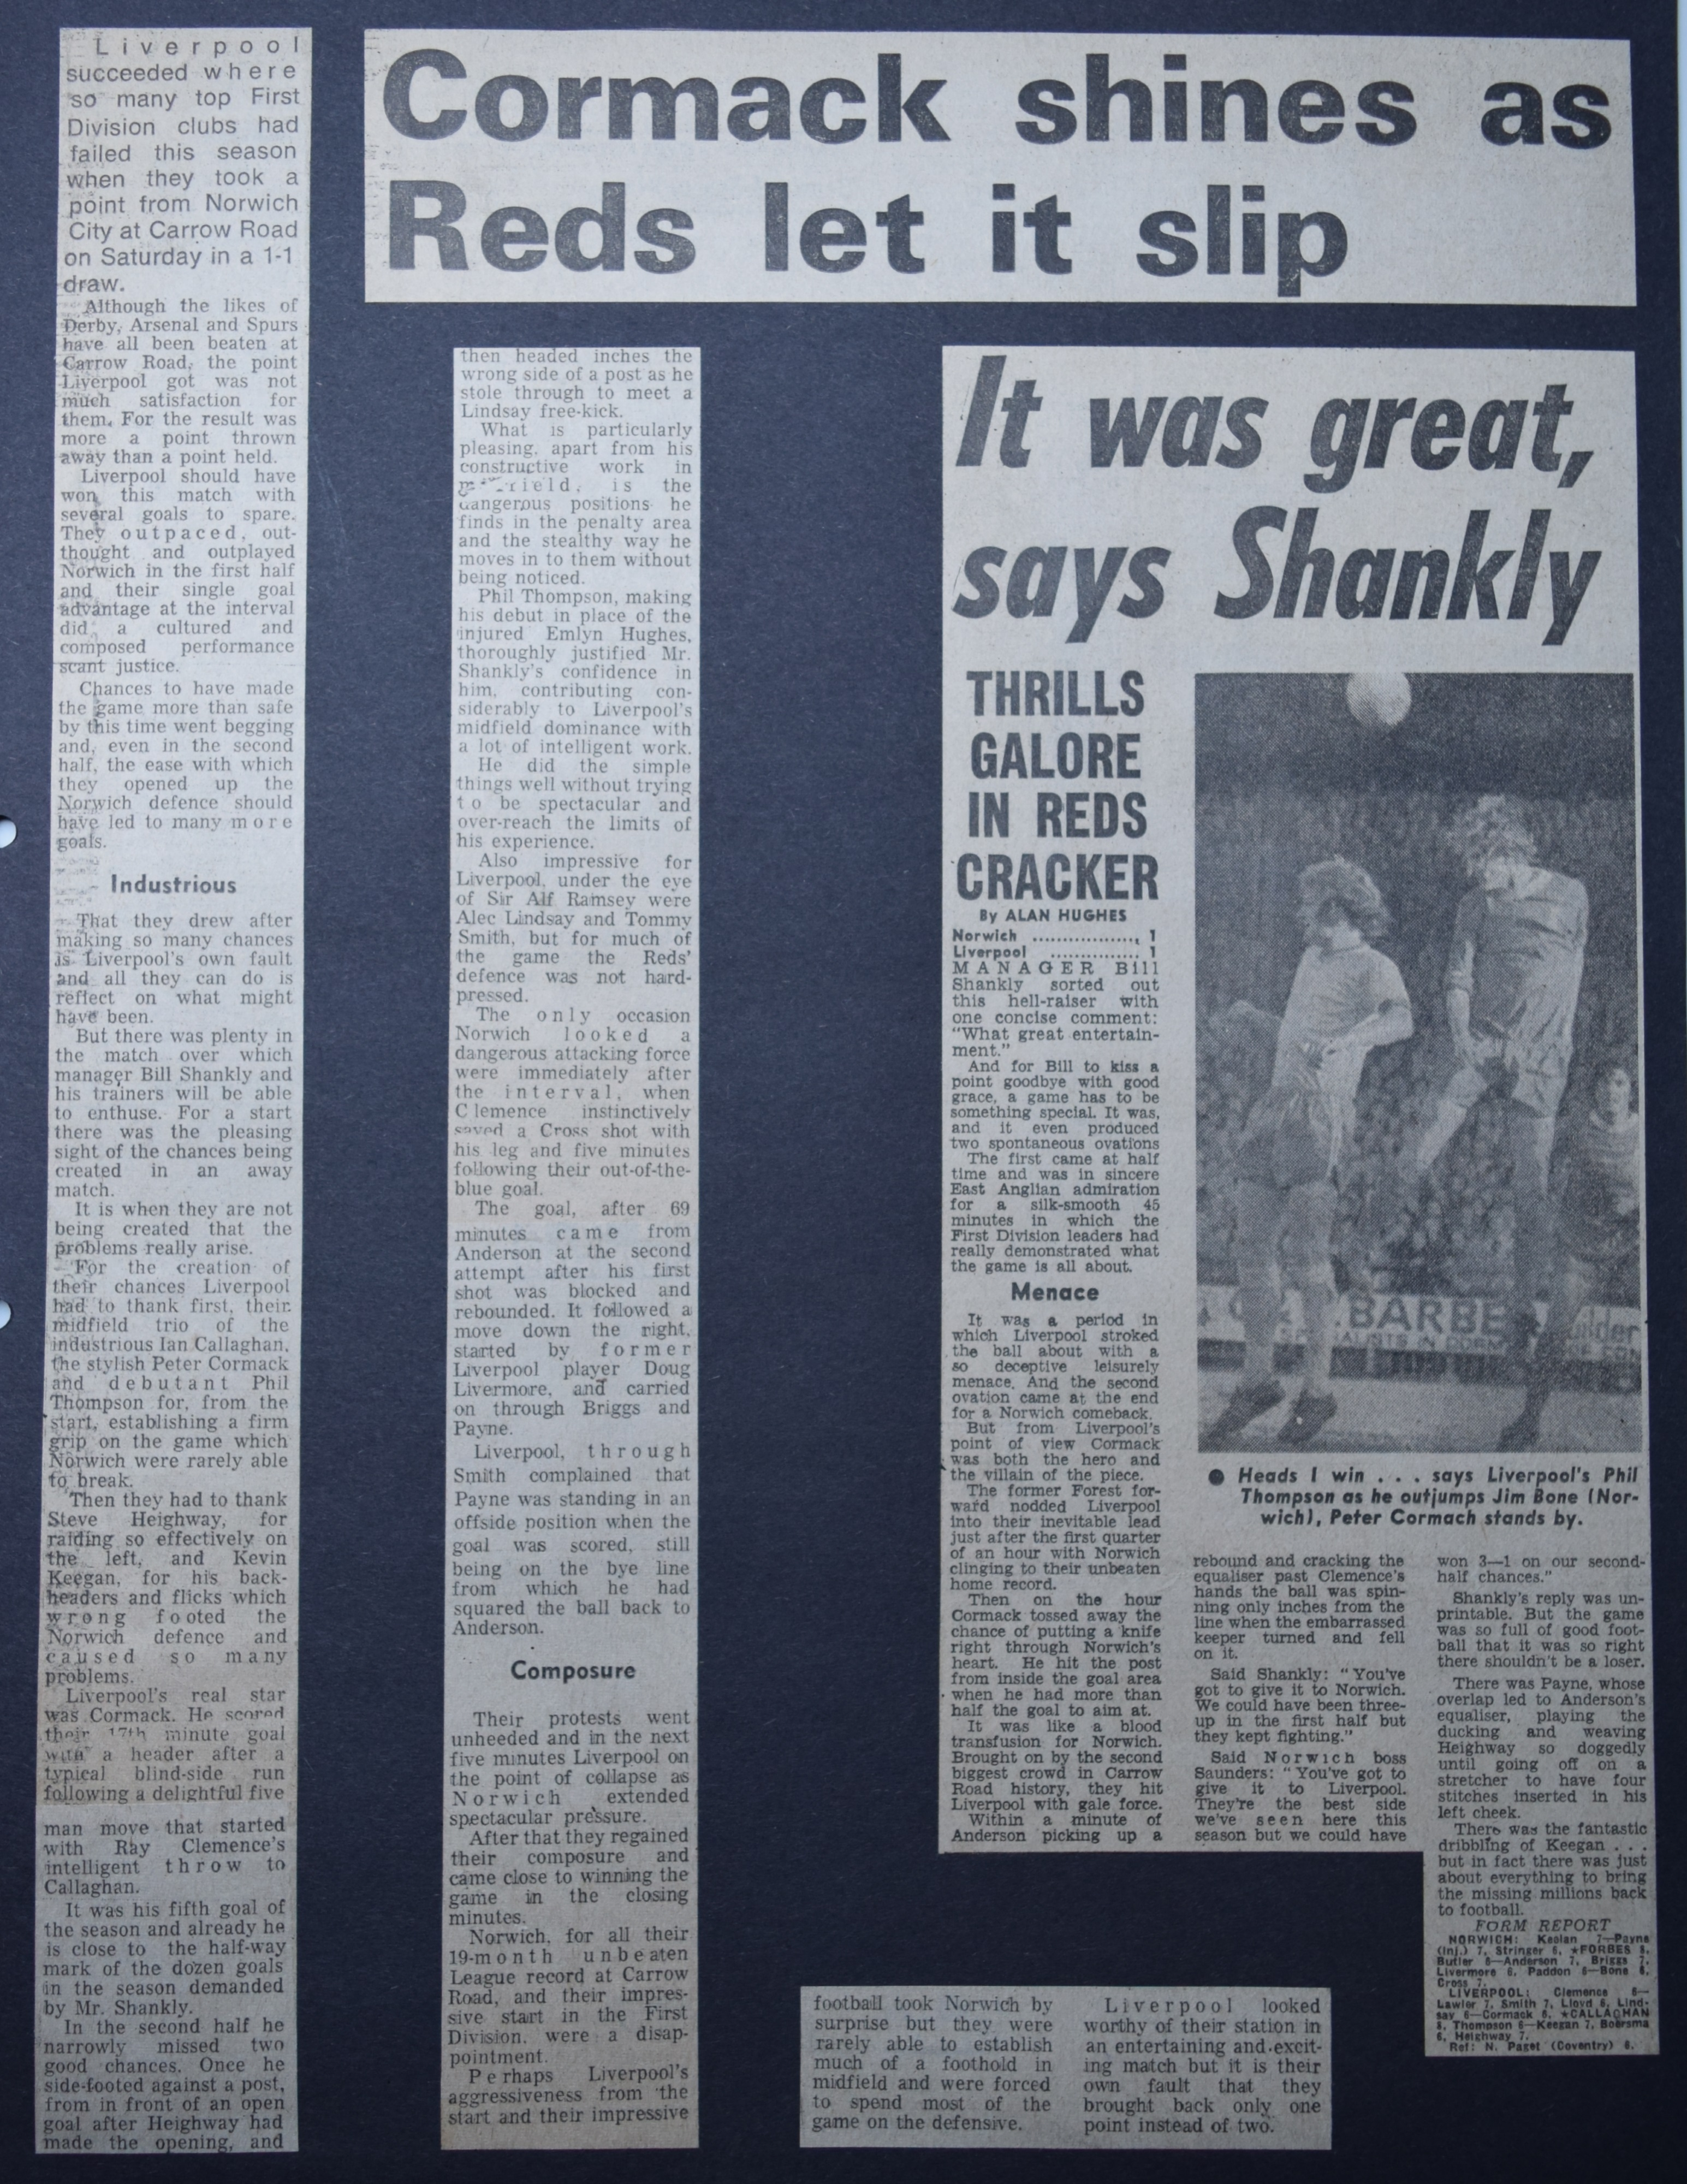 Cormack shines as Reds let it slip - 28 October 1972